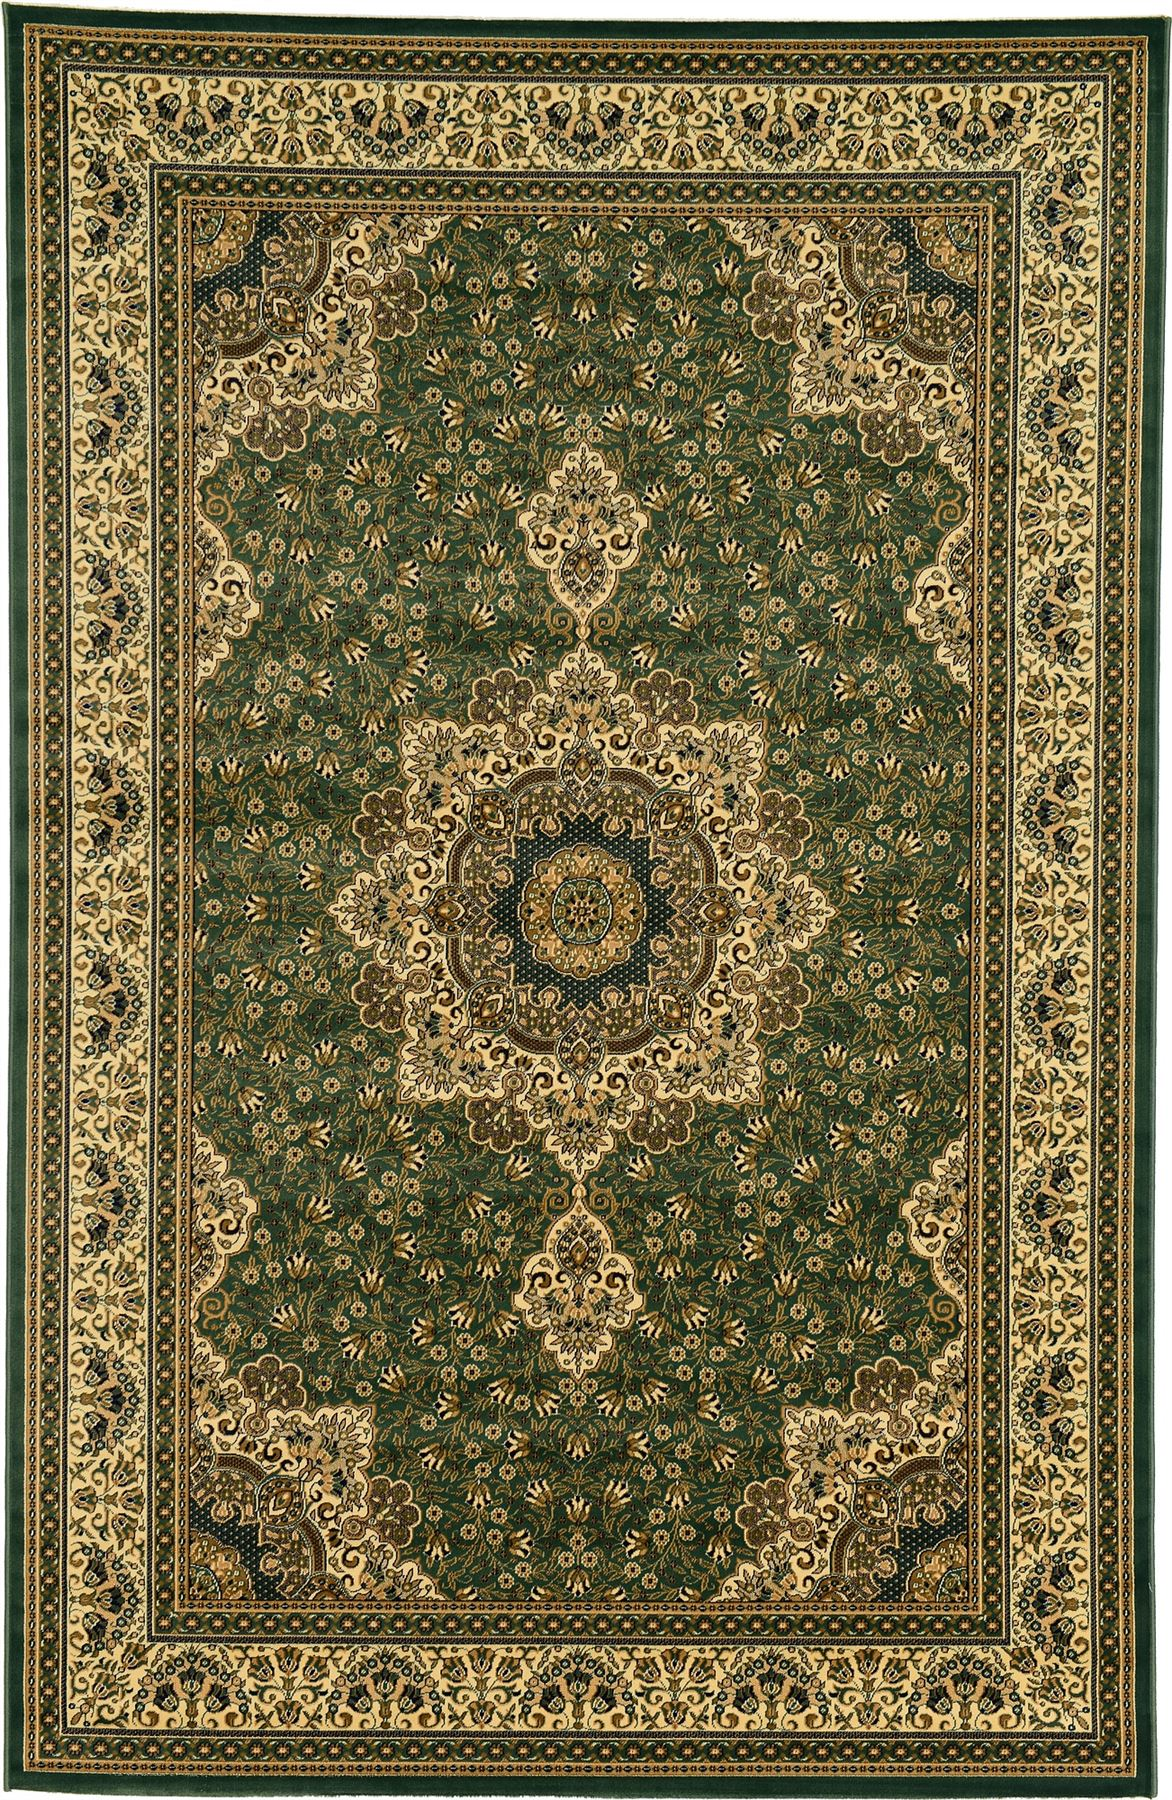 28 6 x 9 area rugs safavieh handwoven sumak copper beige wo